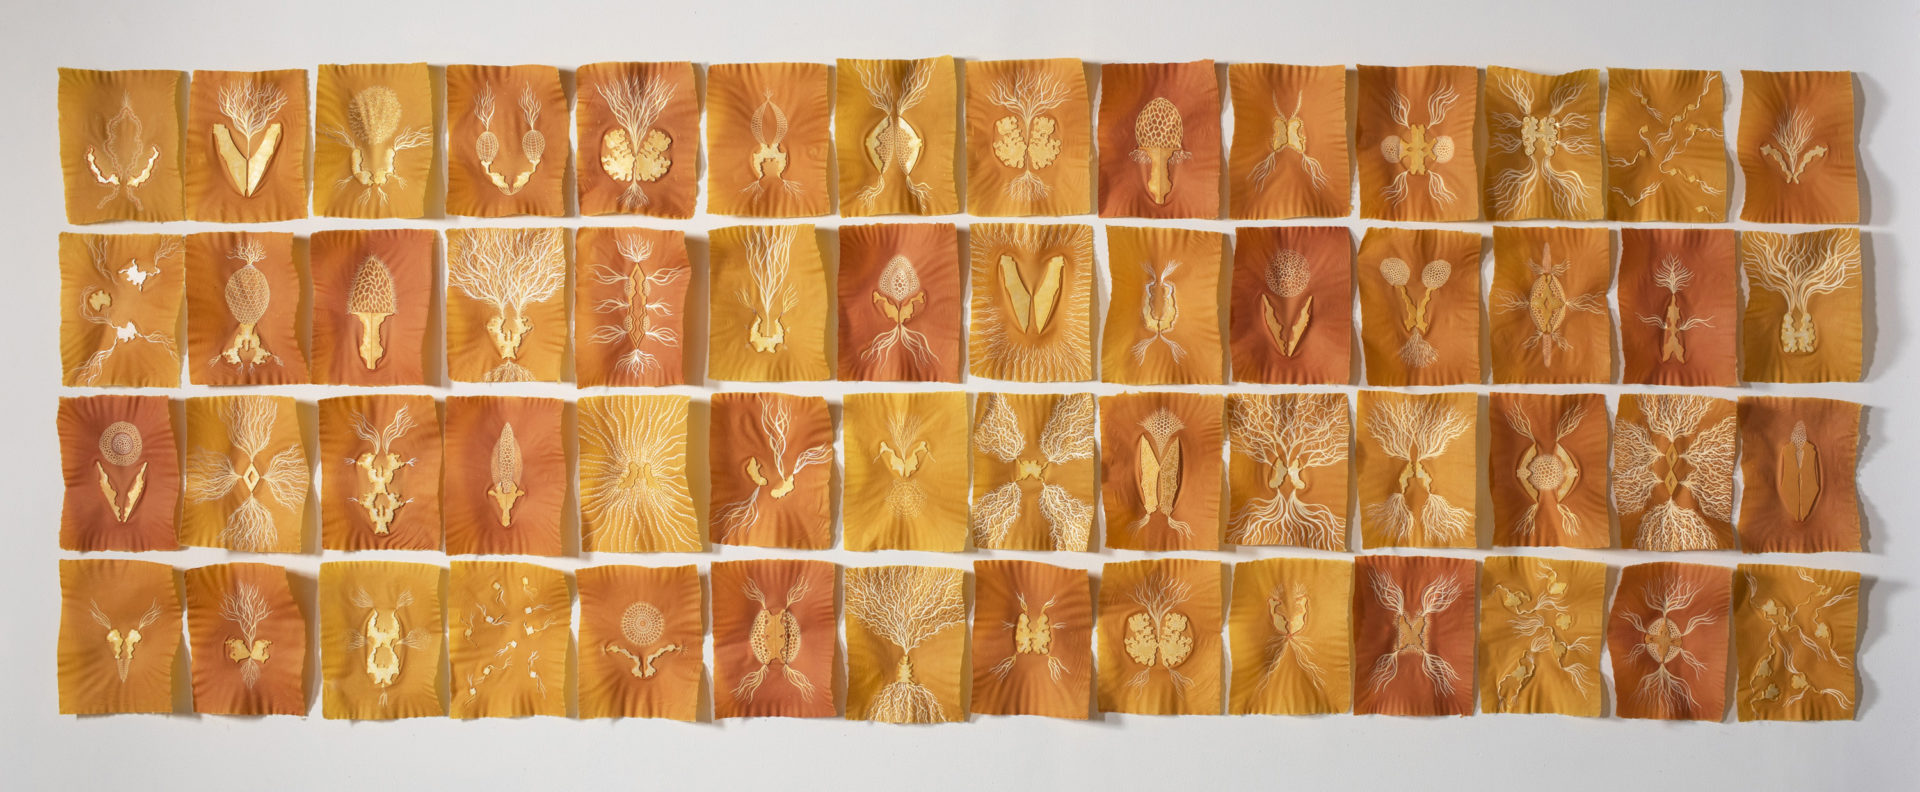 """Michelle Samour, """"Land of milk and honey: Stuck,"""" 2020. (Courtesy of the Fuller Craft Museum)"""